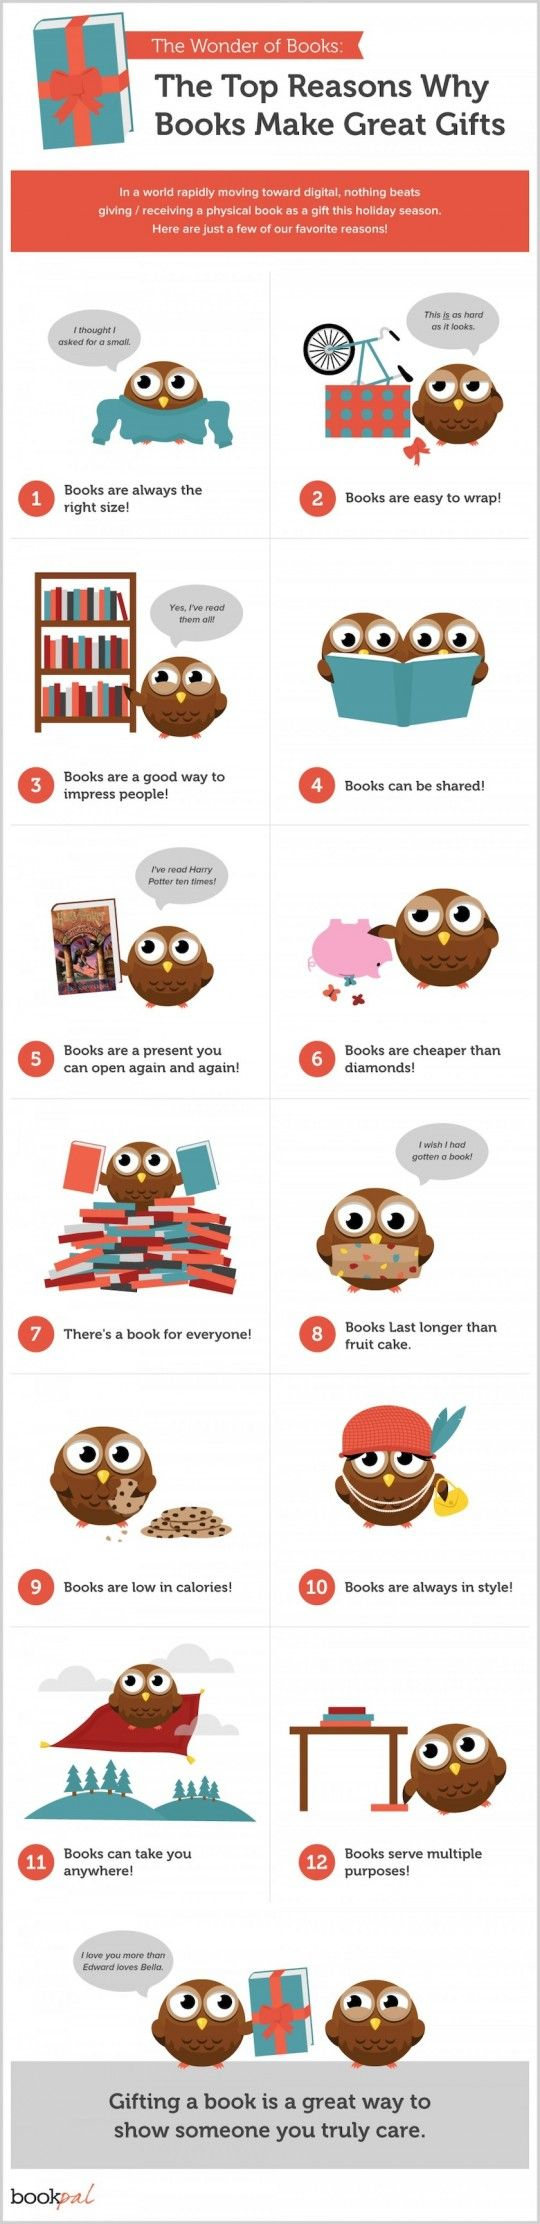 12 reasons why books make great gifts